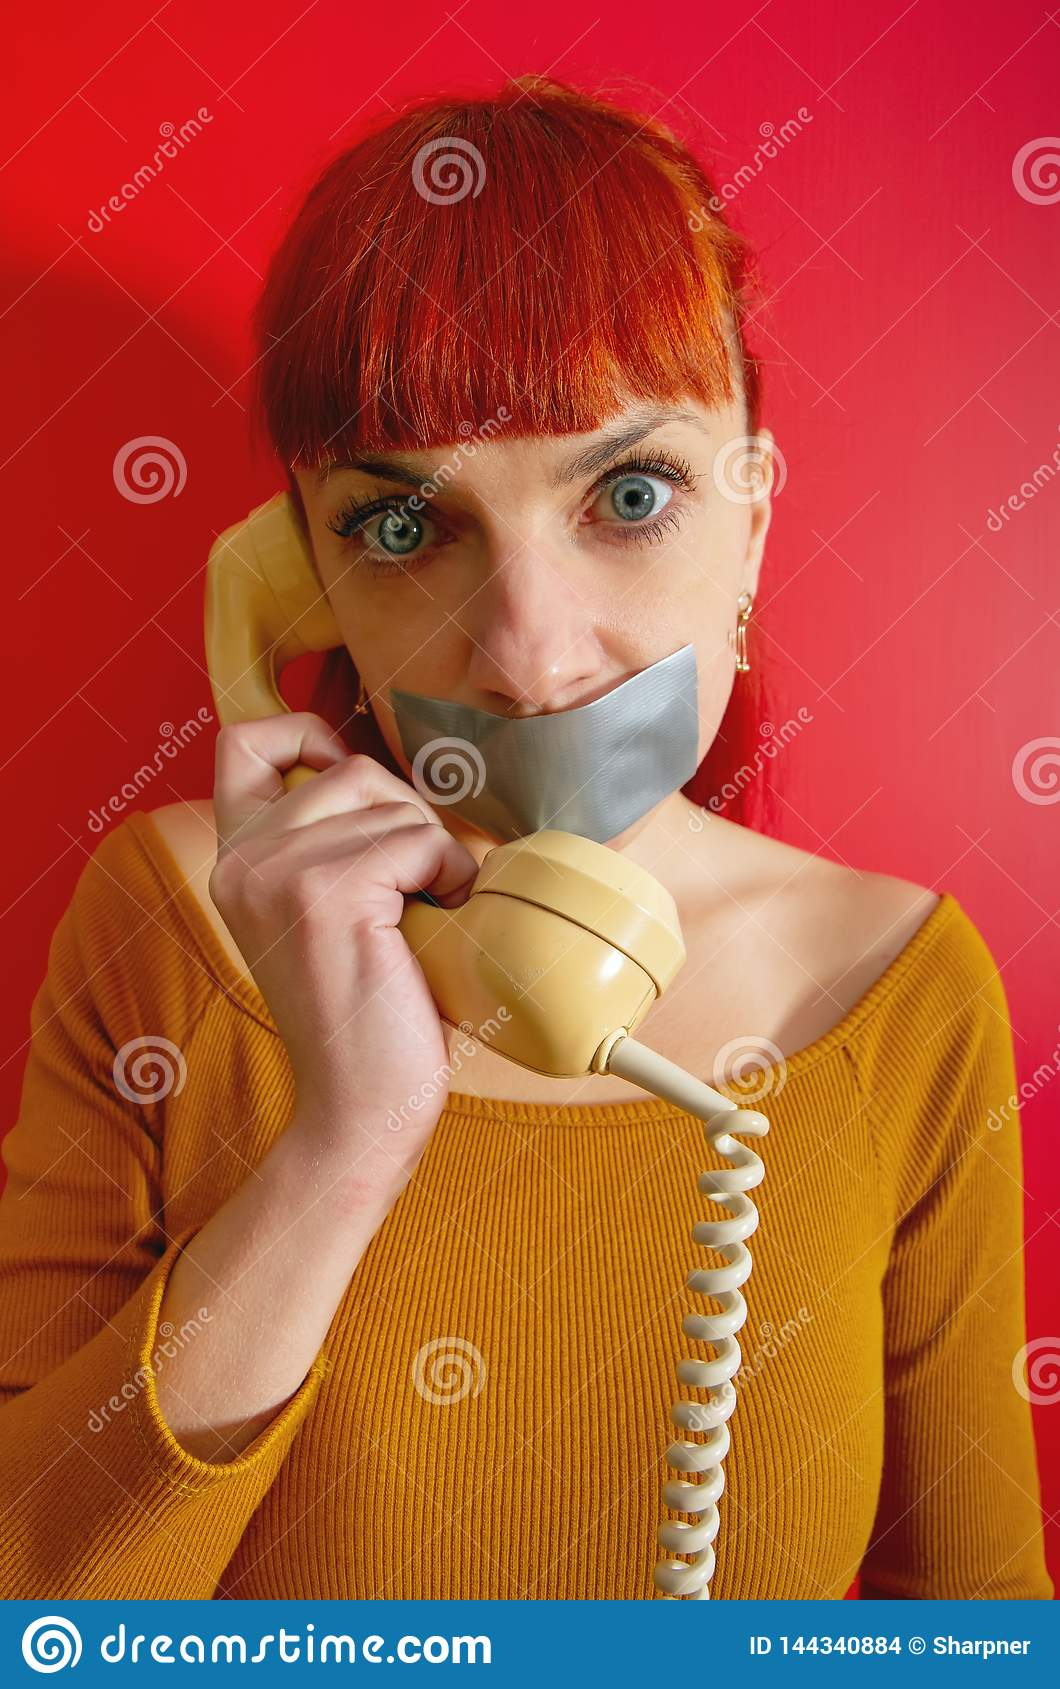 Girl Tape Lips Phone Stock Photo Image Of Cellphone 144340884